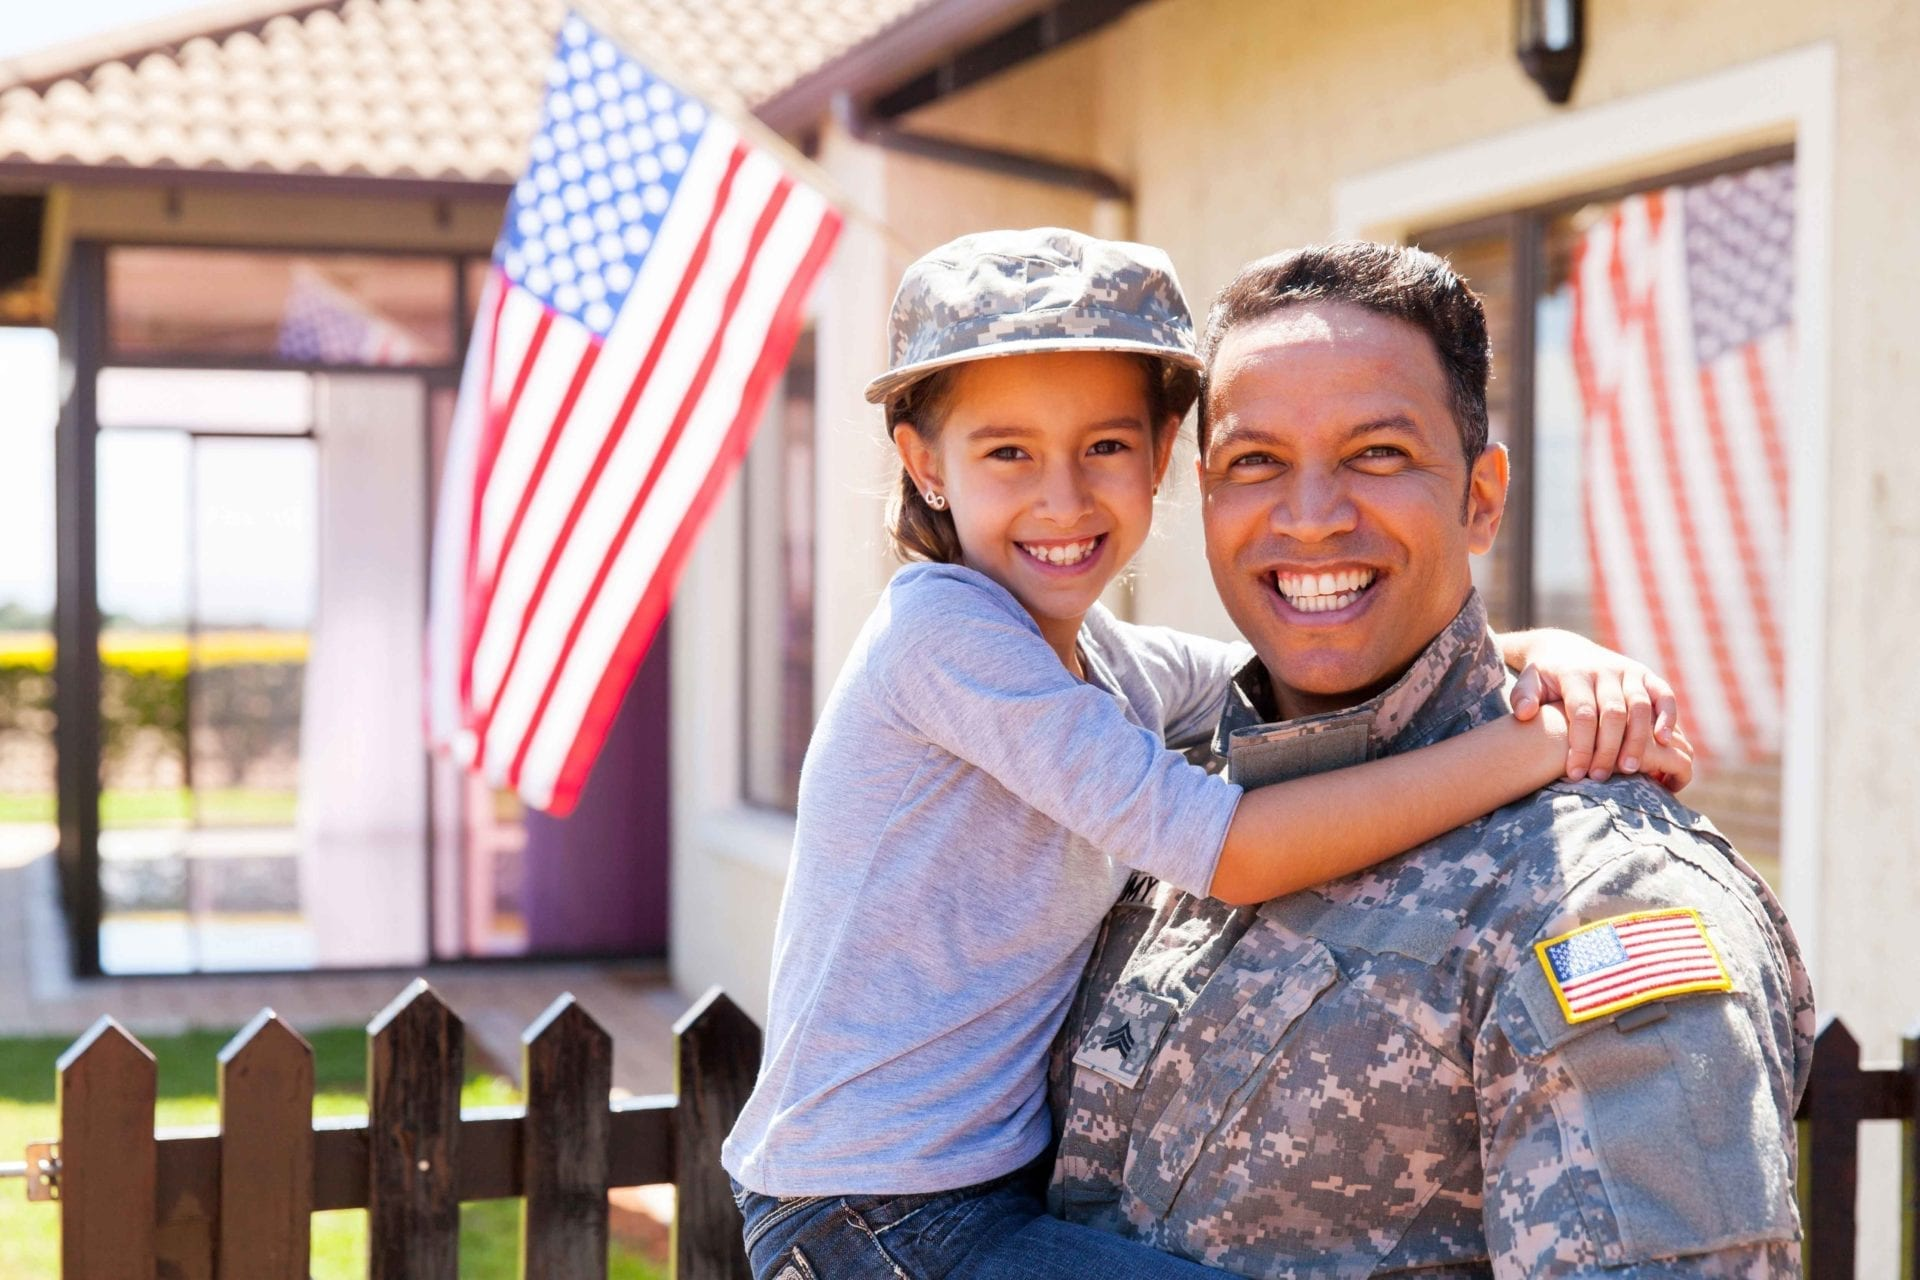 Man in an service uniform holding a child with an American flag in the background.